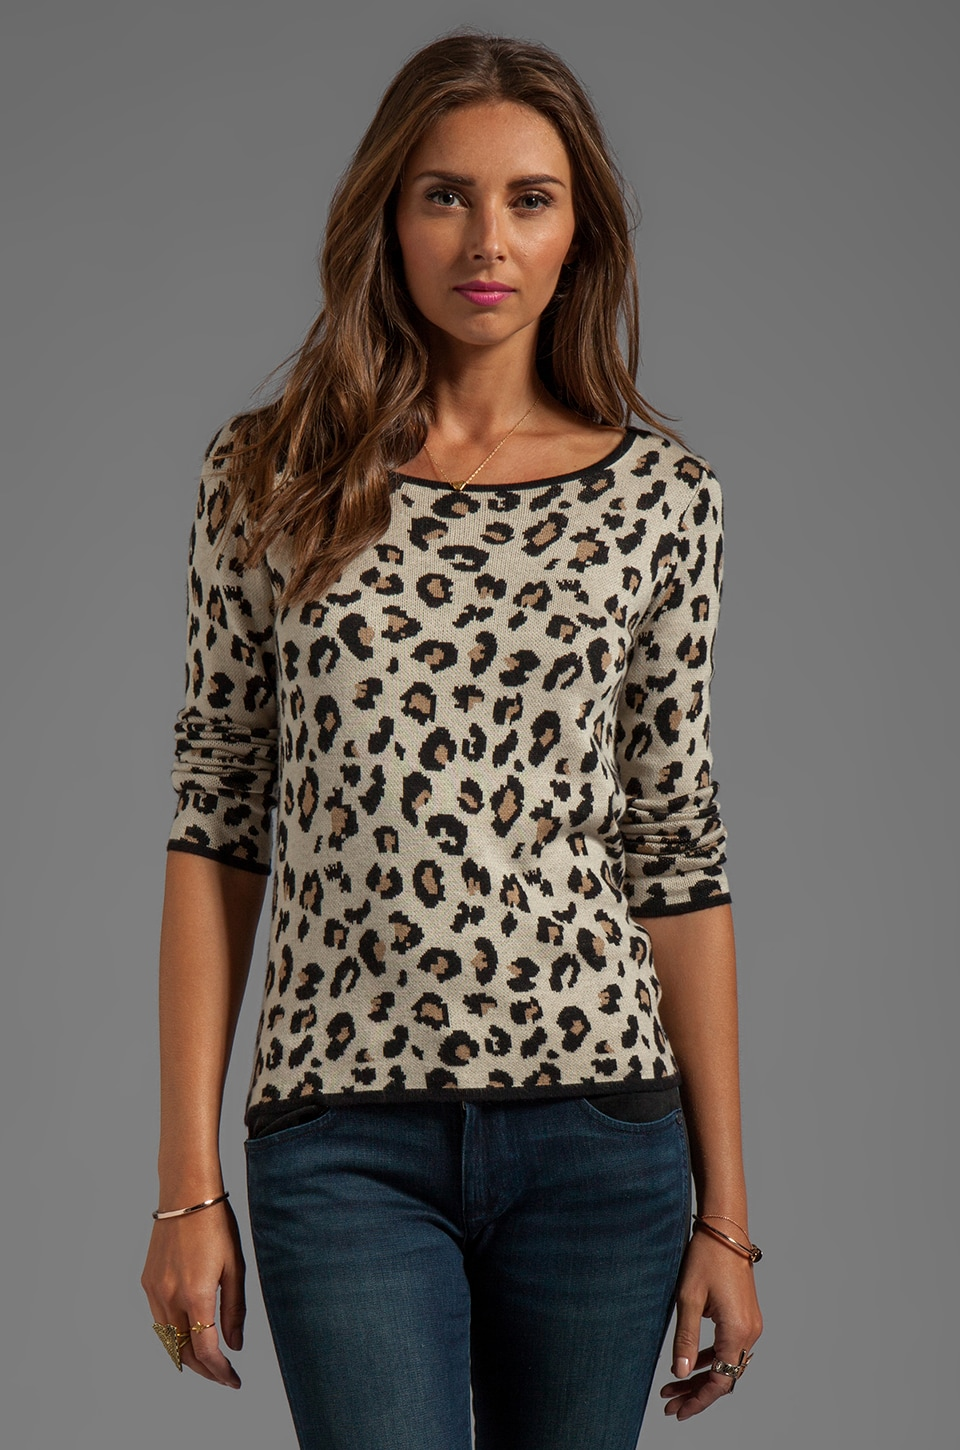 Velvet by Graham & Spencer Lovey Leopard Jacquard Long Sleeve Tee in Multi